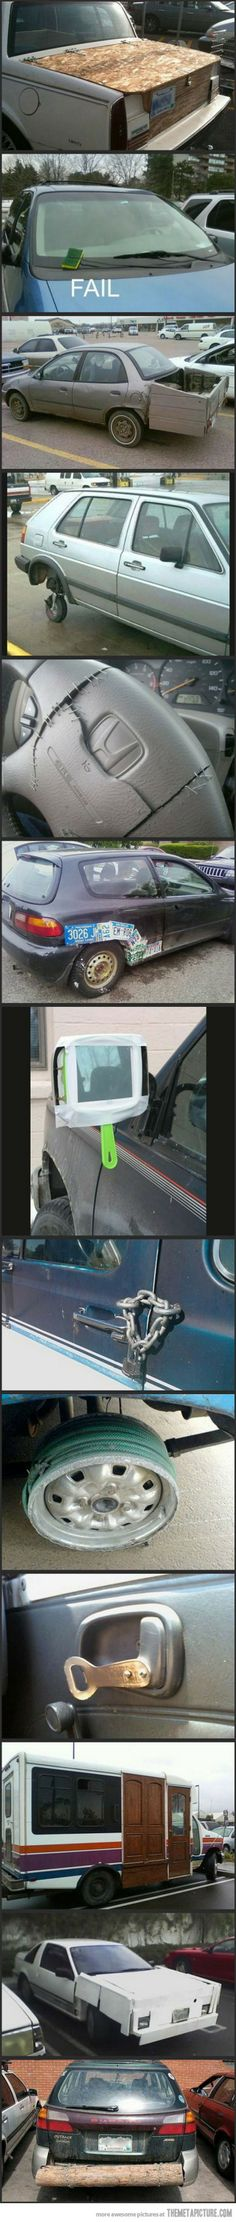 These aren't fails. These are people being pretty damn resourceful. Dang